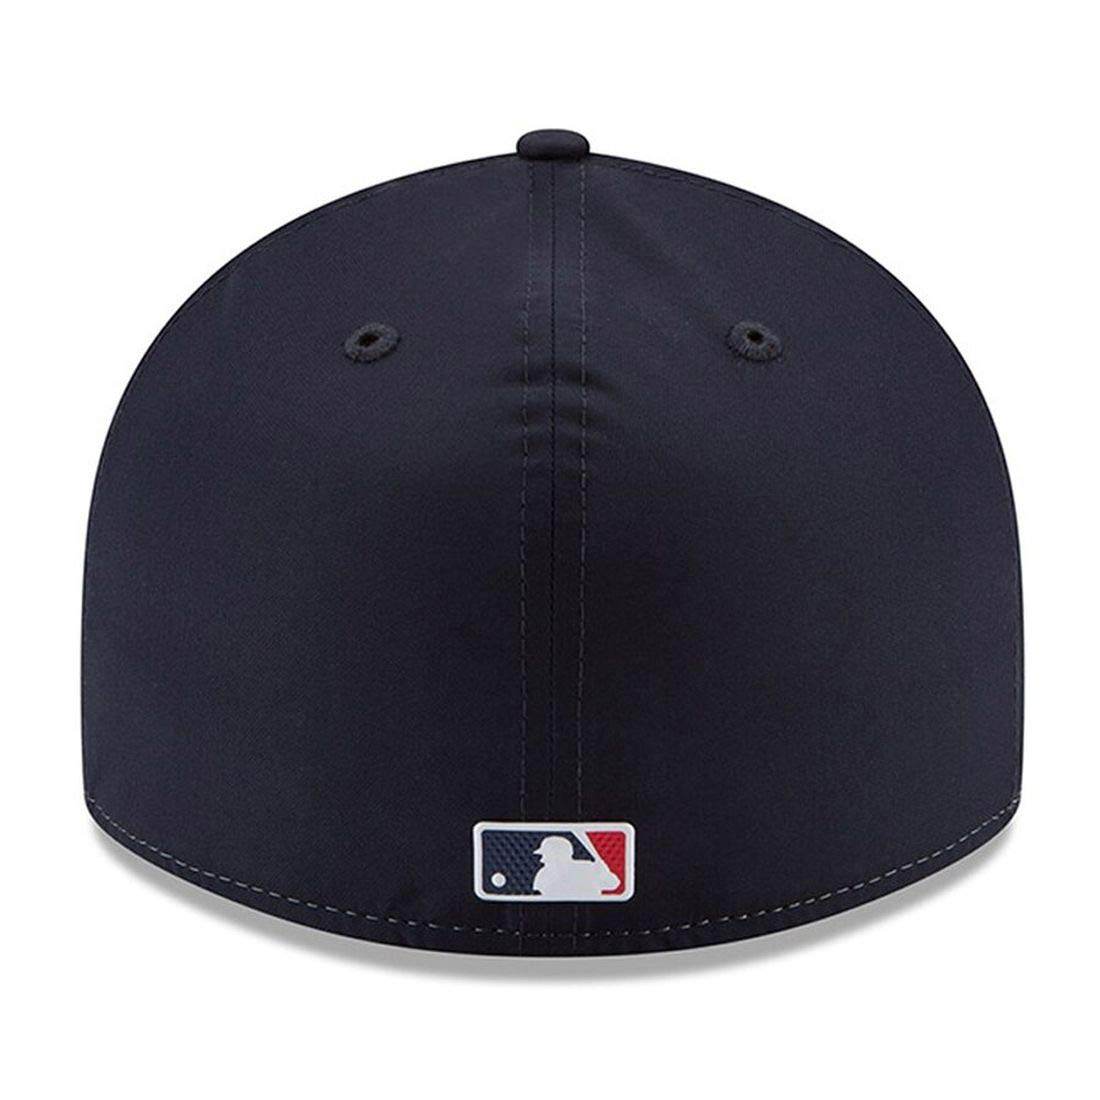 7 3//8, Blue 2018 BP Lowpro New Era Cleveland Indians Fitted Baseball Hat MLB 59Fifty Straight Brim Caps